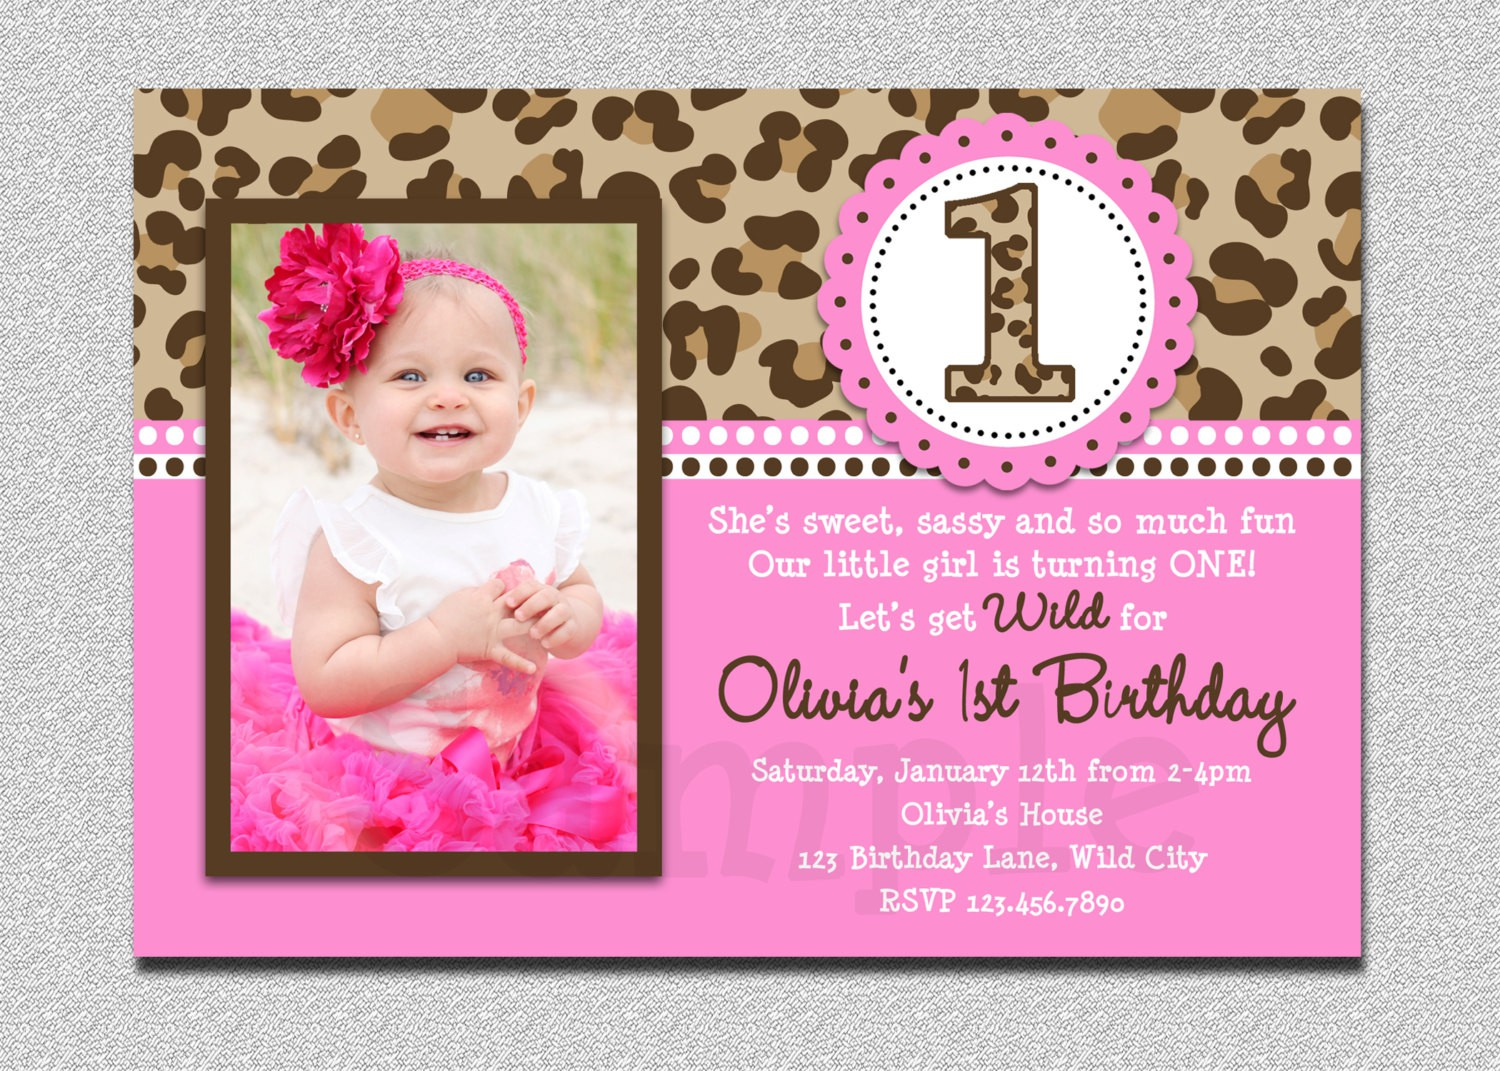 birthday card for baby girl ; birthday-invitation-cards-for-baby-girl